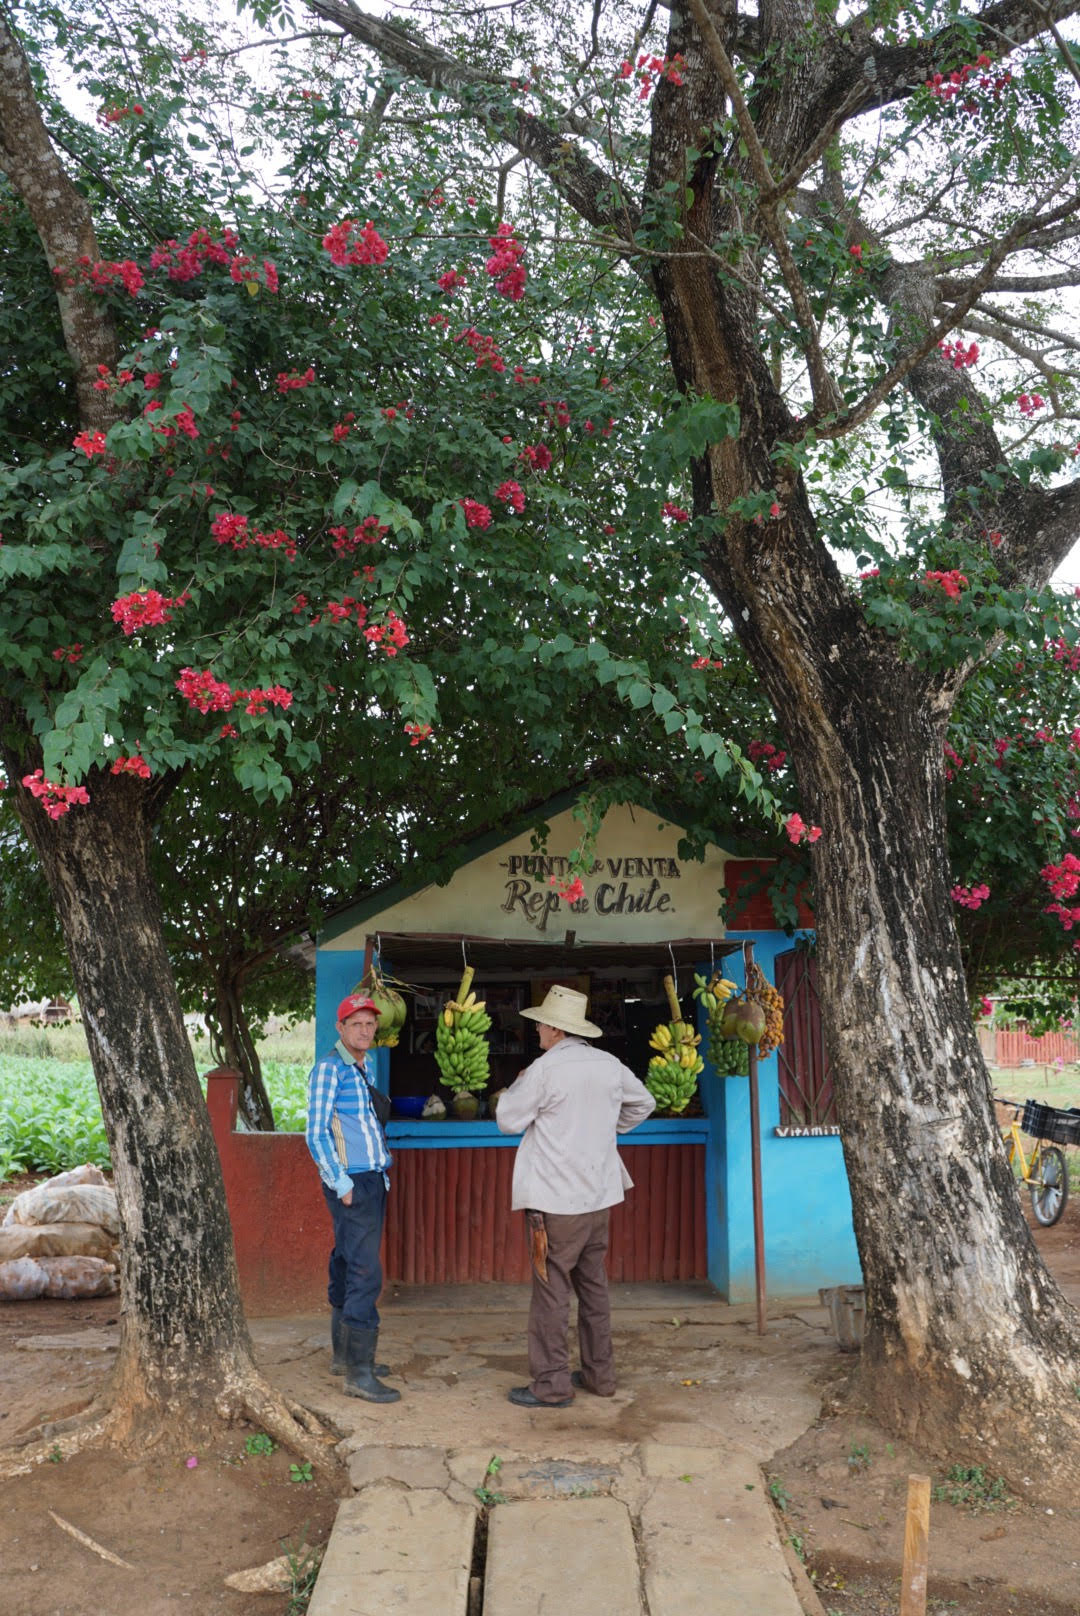 Pitstop for bananas in the Valle de Viñales